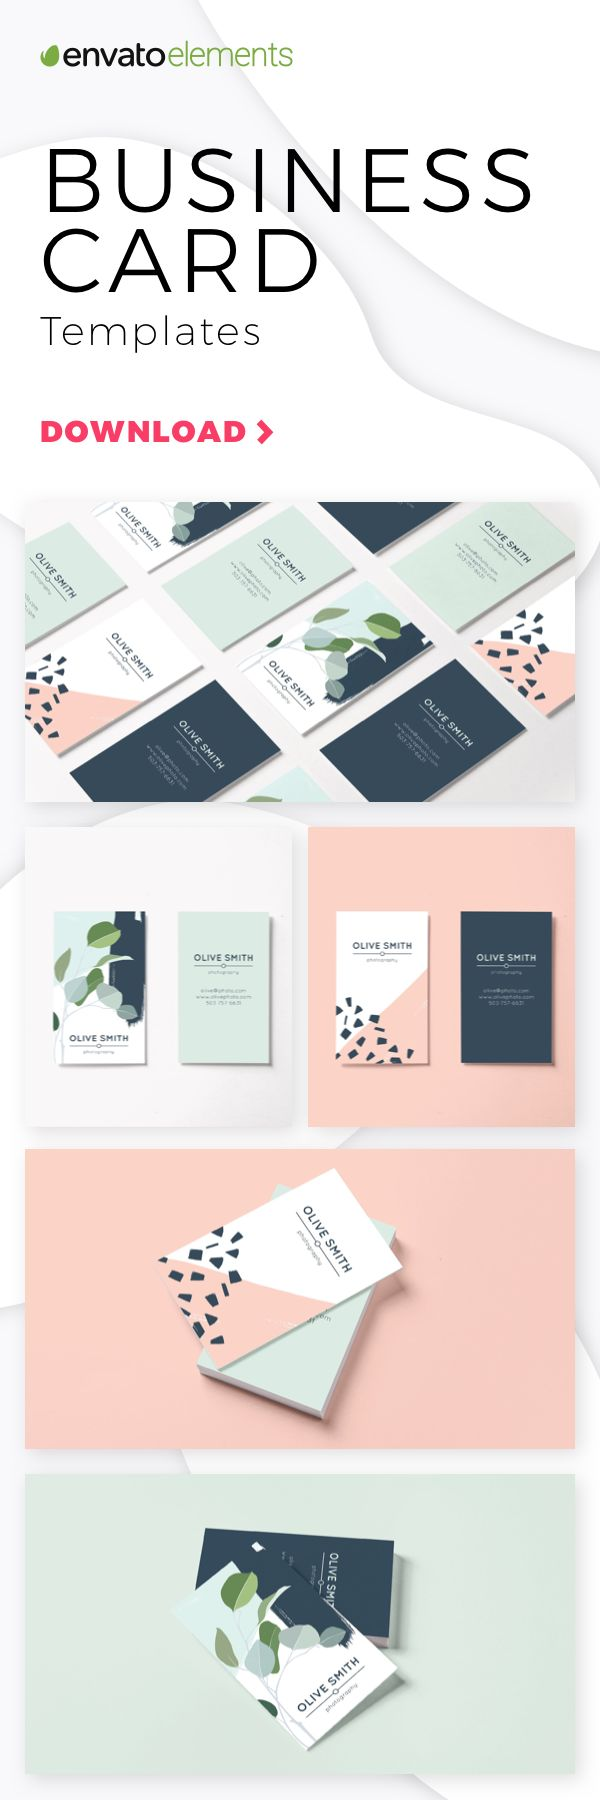 Unlimited Downloads of 2018's Best Business Card Templates